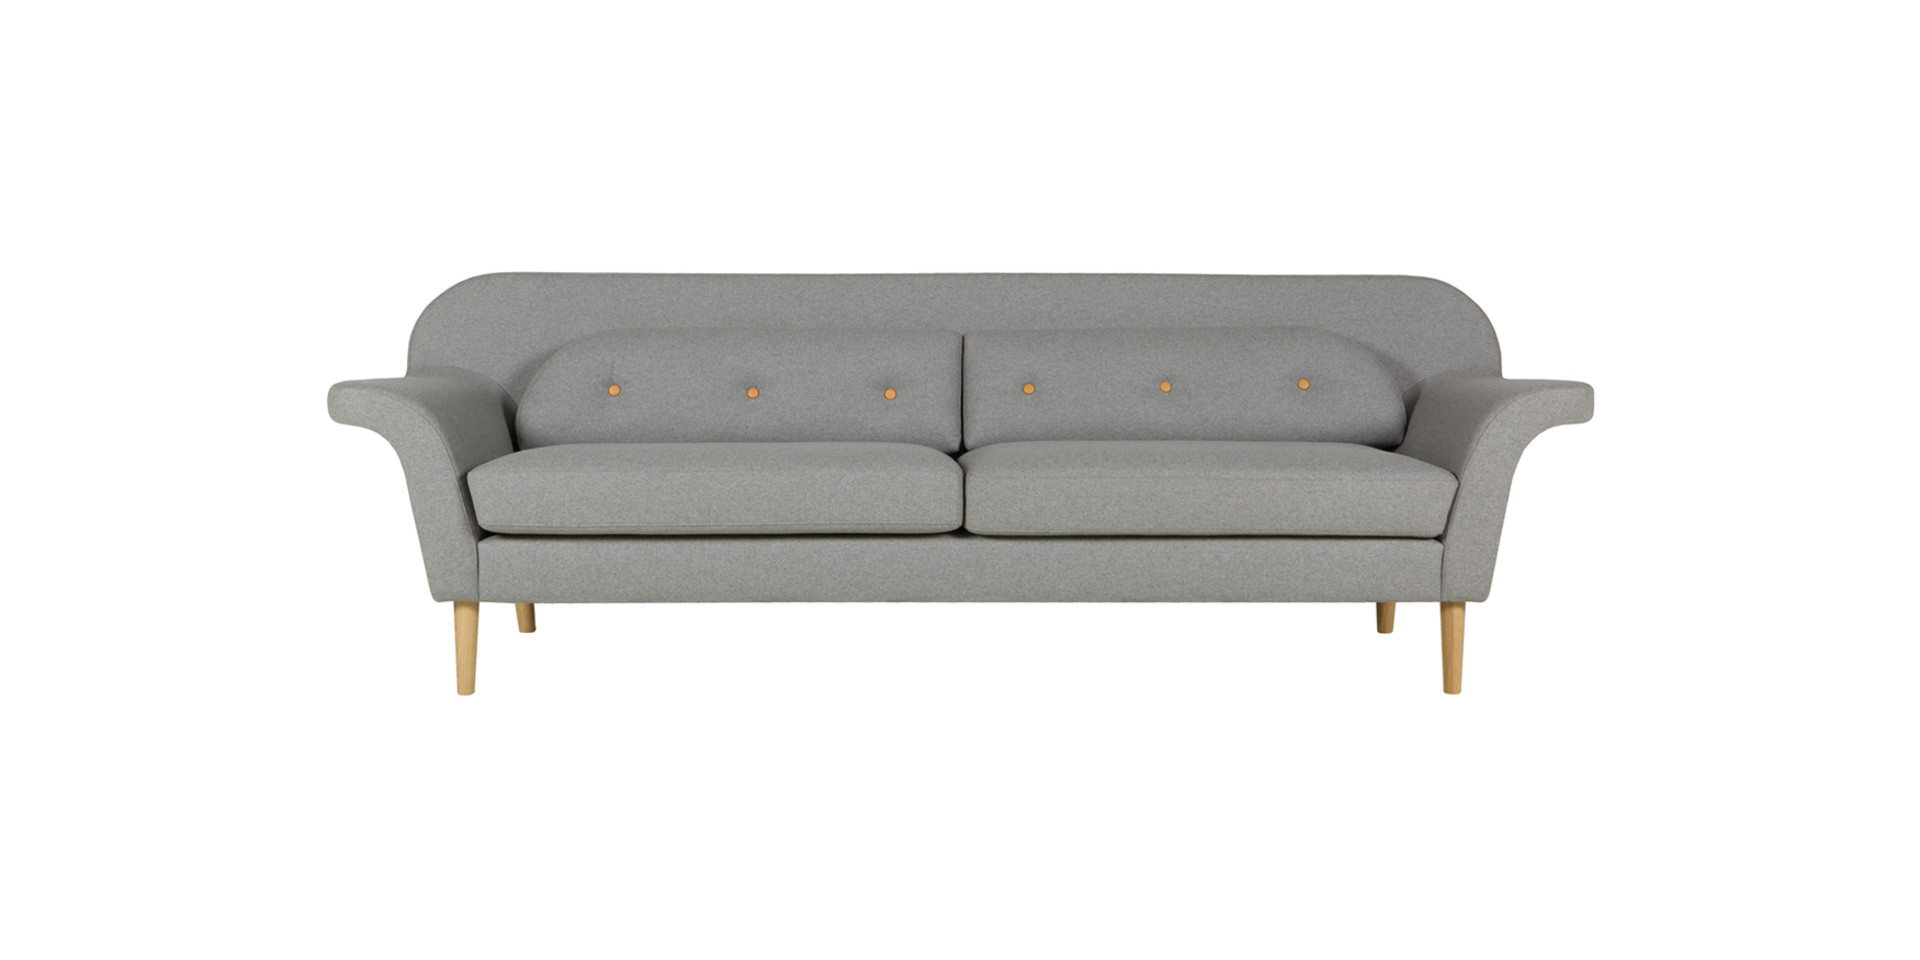 sits-poppy-canape-3seater_panno1000_light_grey_1a